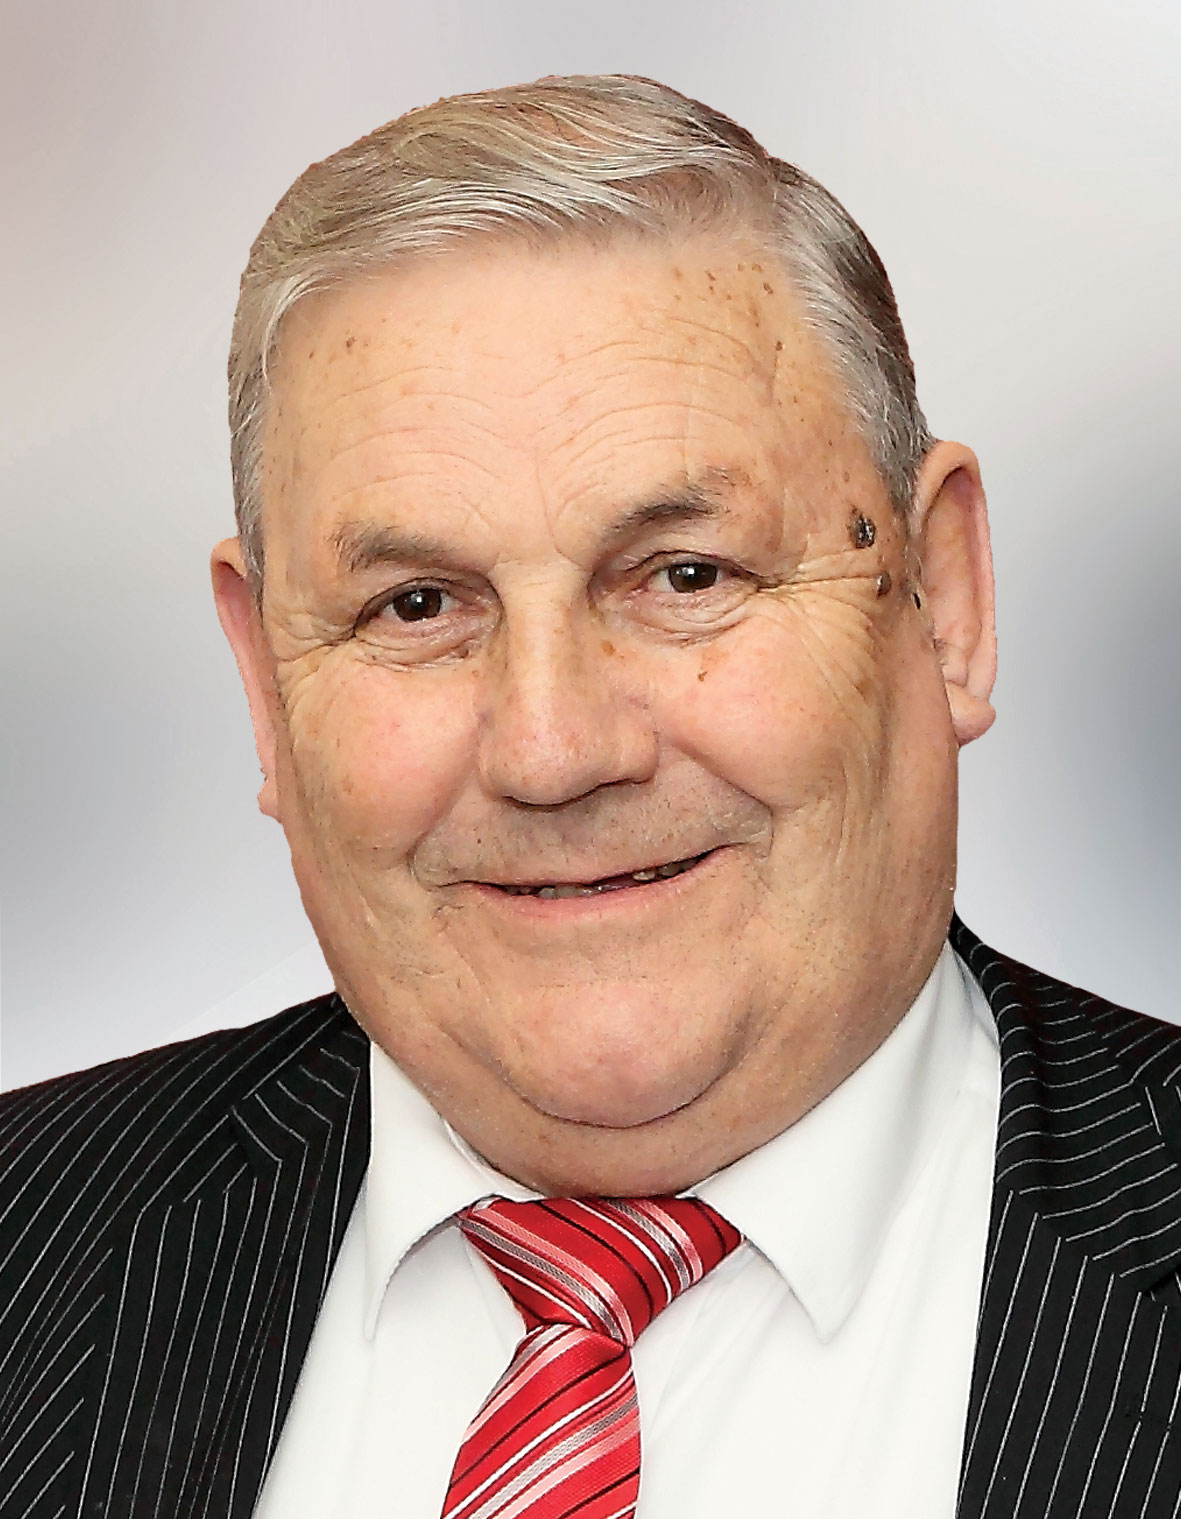 Cllr John Carey